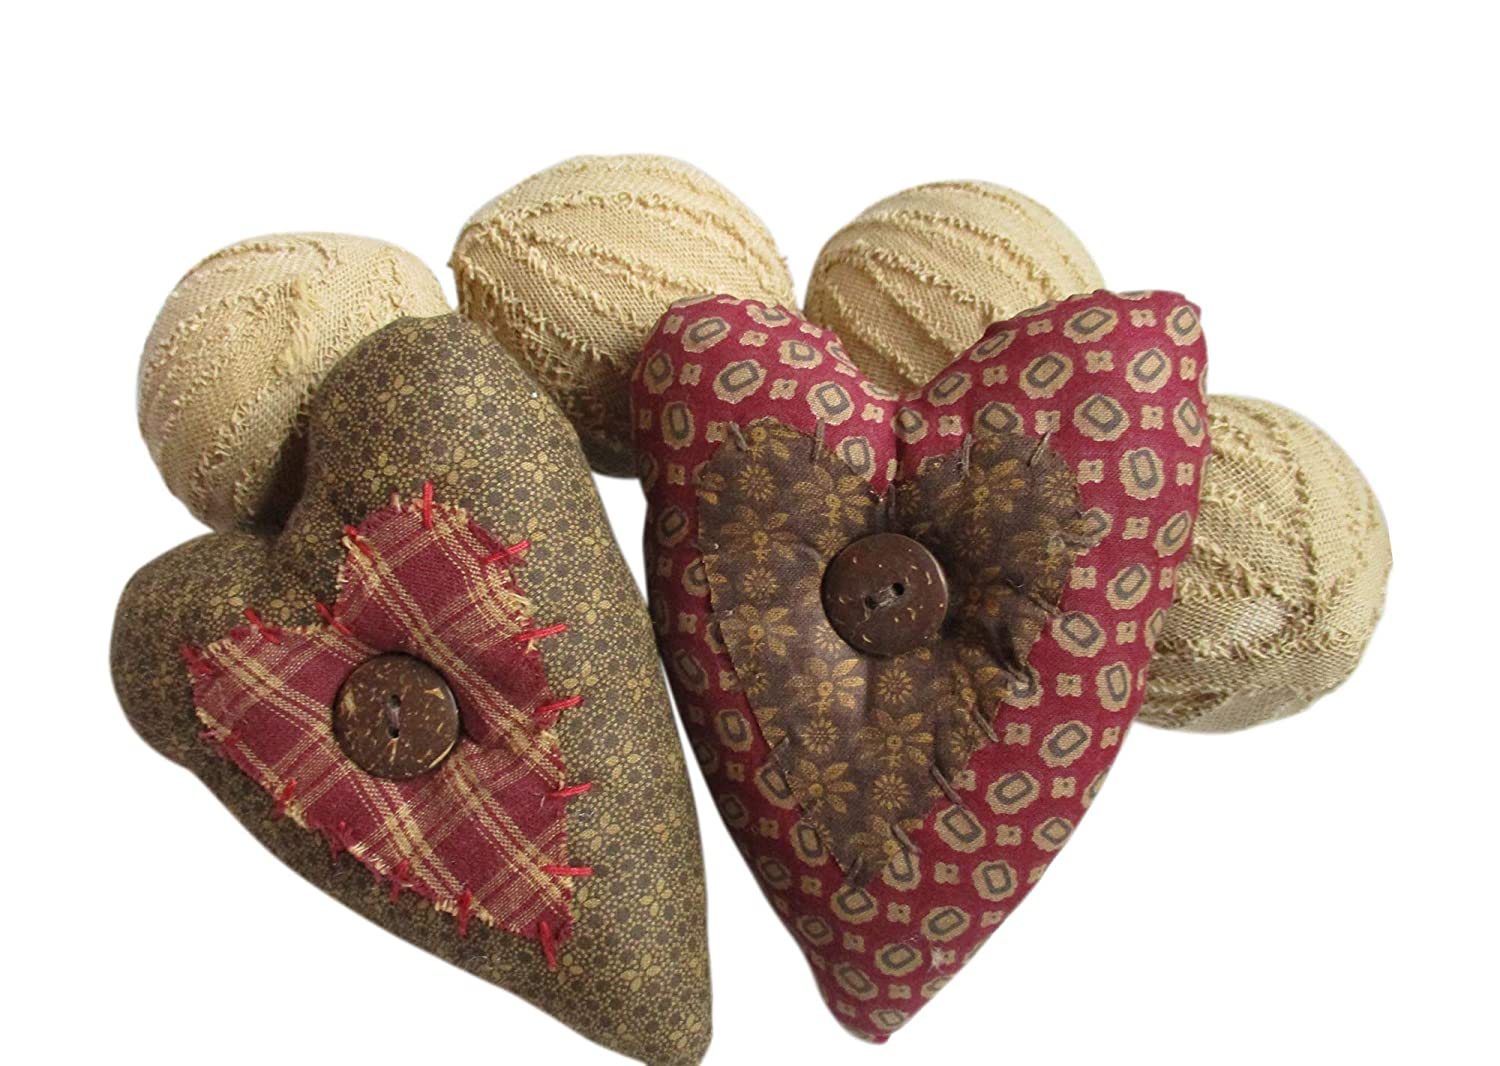 From The Attic Crafts Hearts and Burlap Balls Bowl Filler Primitive Bowl Fillers Set of 6